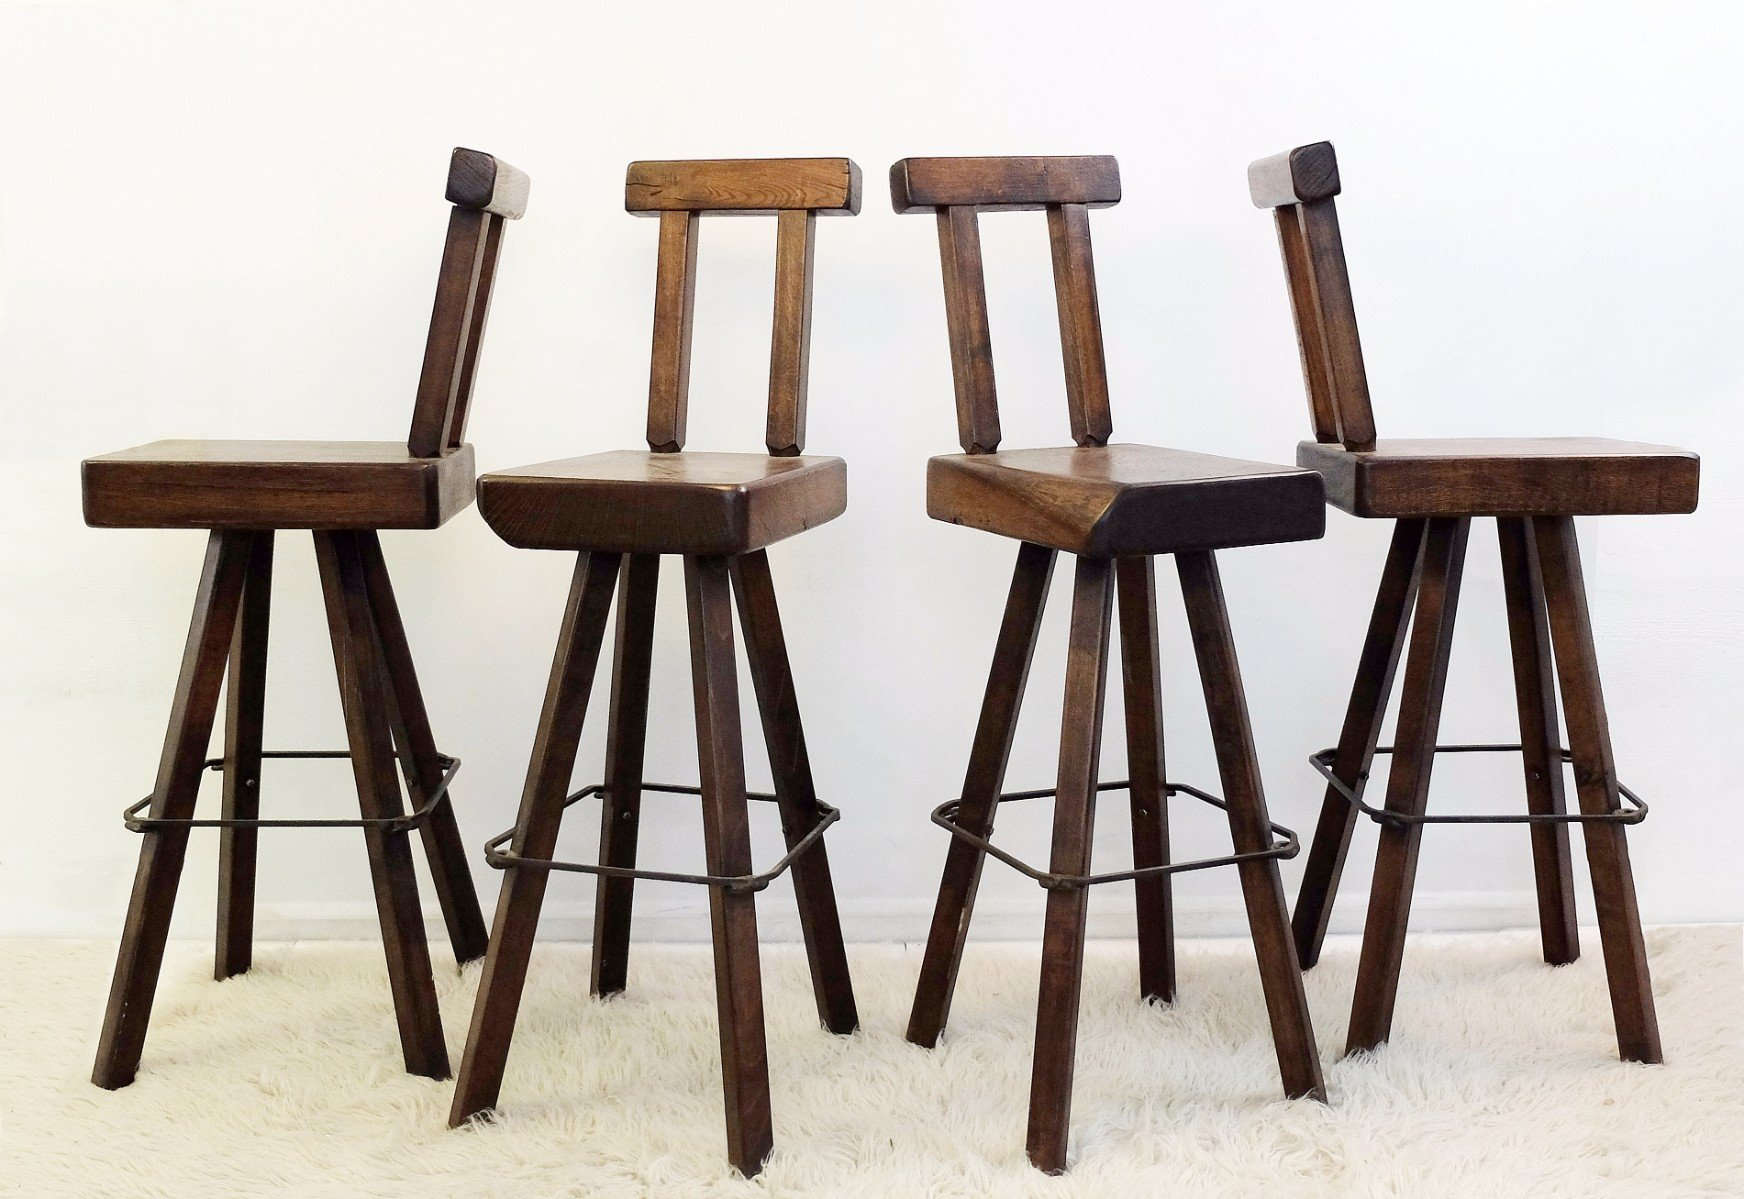 Solid Wood Swivel Bar Stools Set Of 4 For Sale At Pamono